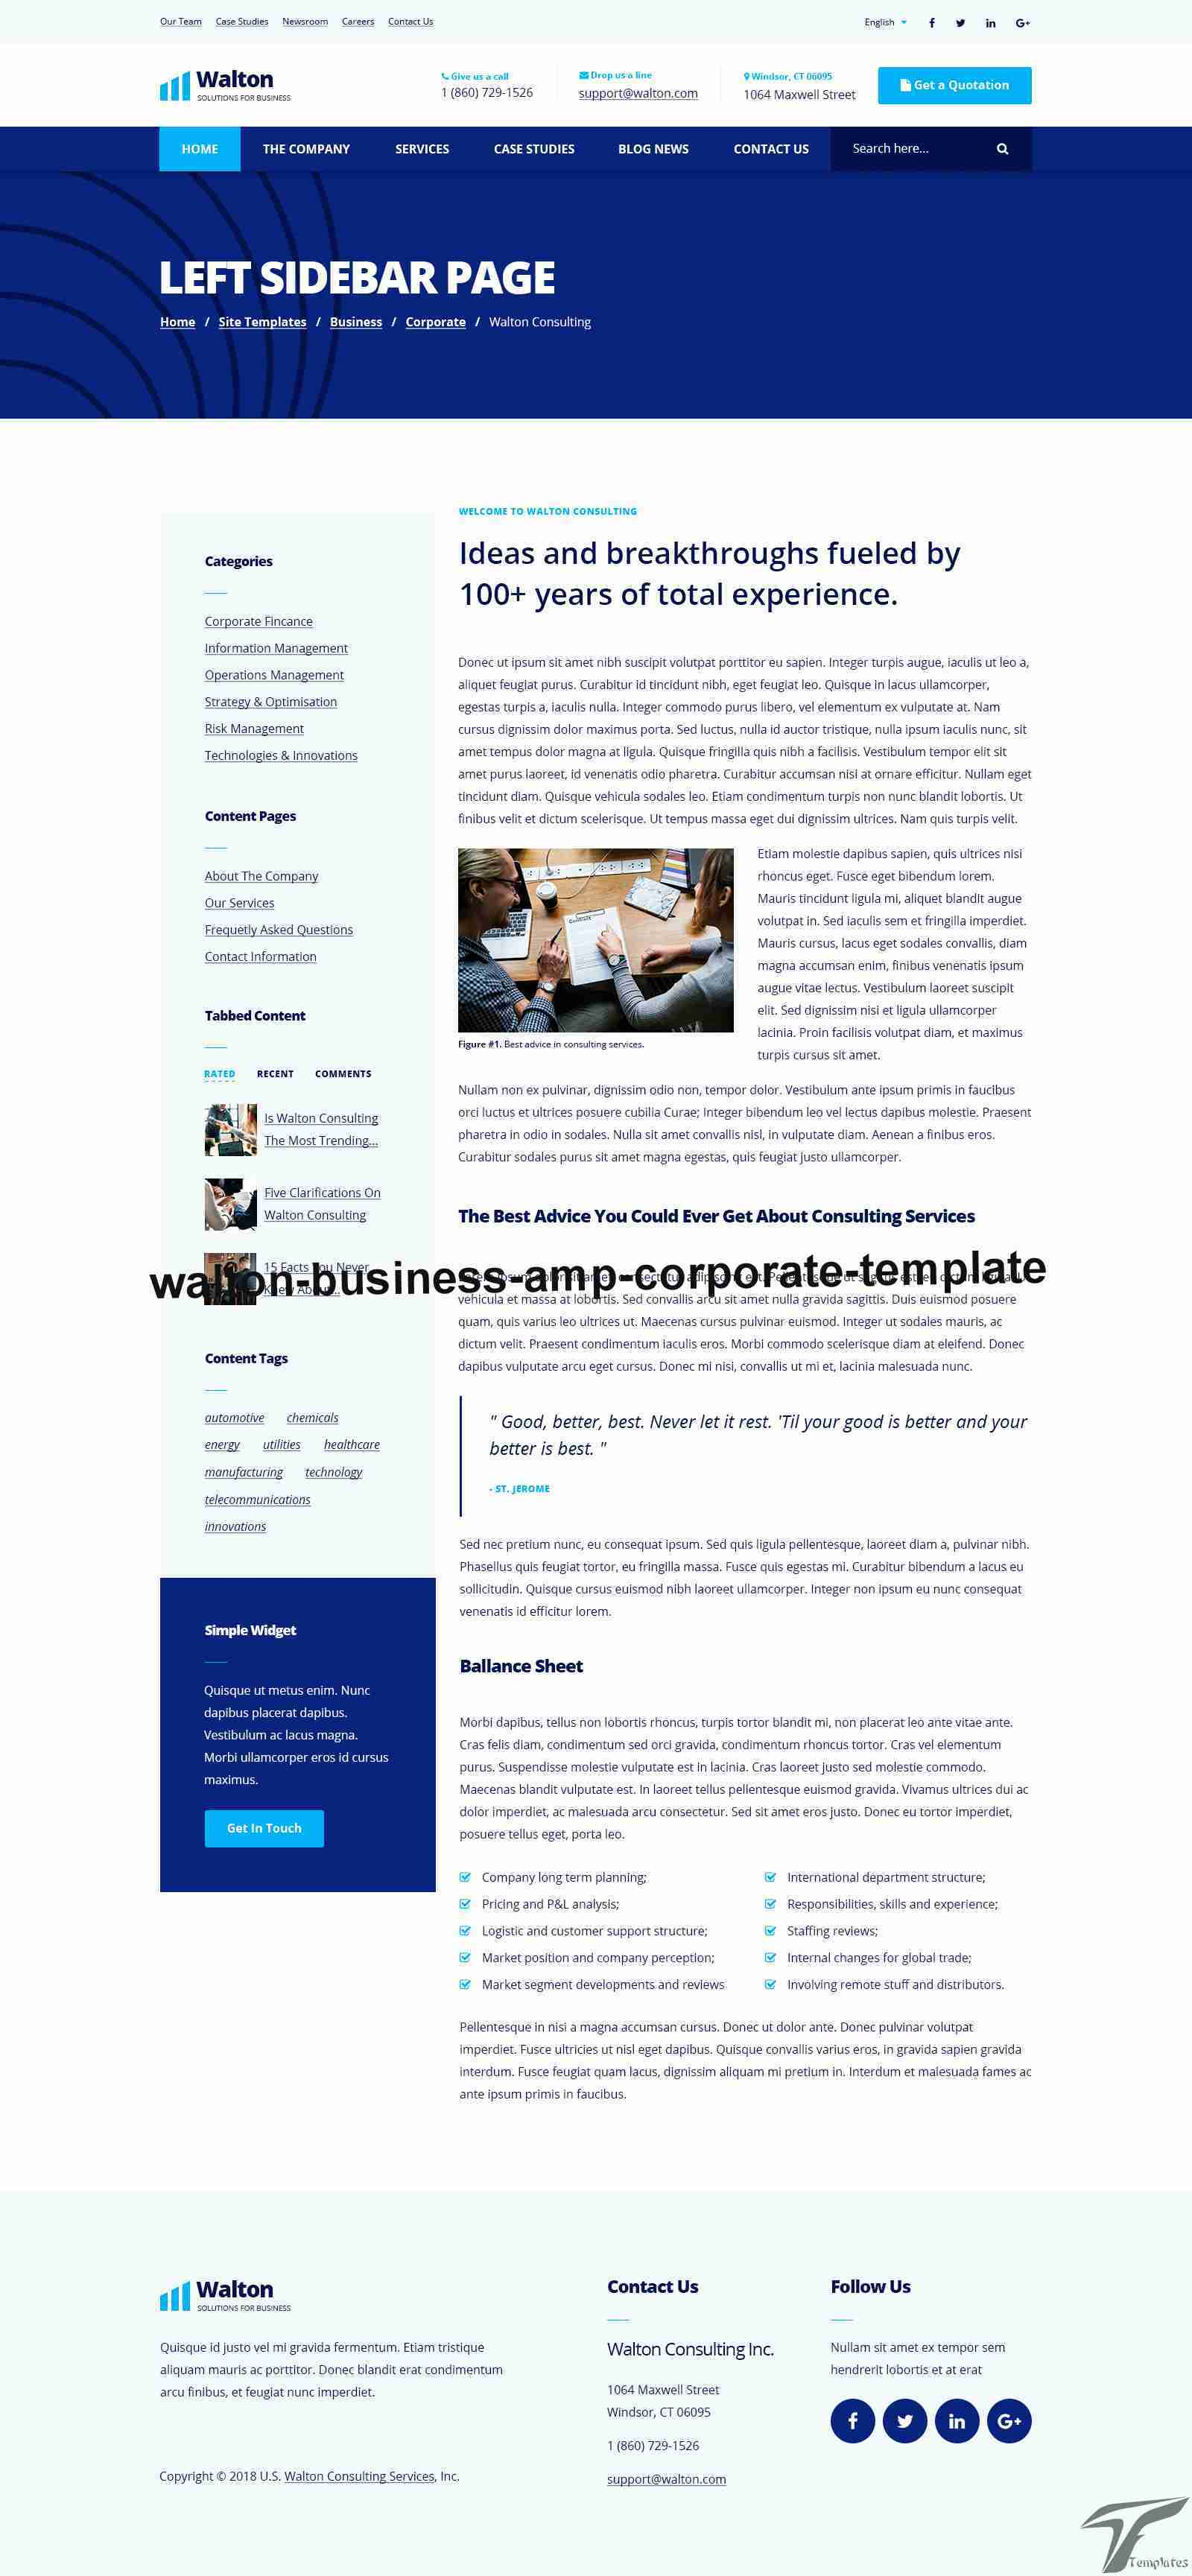 https://images.besthemes.com/images/h1_walton-business-amp-corporate-template9-_-248336682-sshot-09_walton_page_sidebar_left.jpg